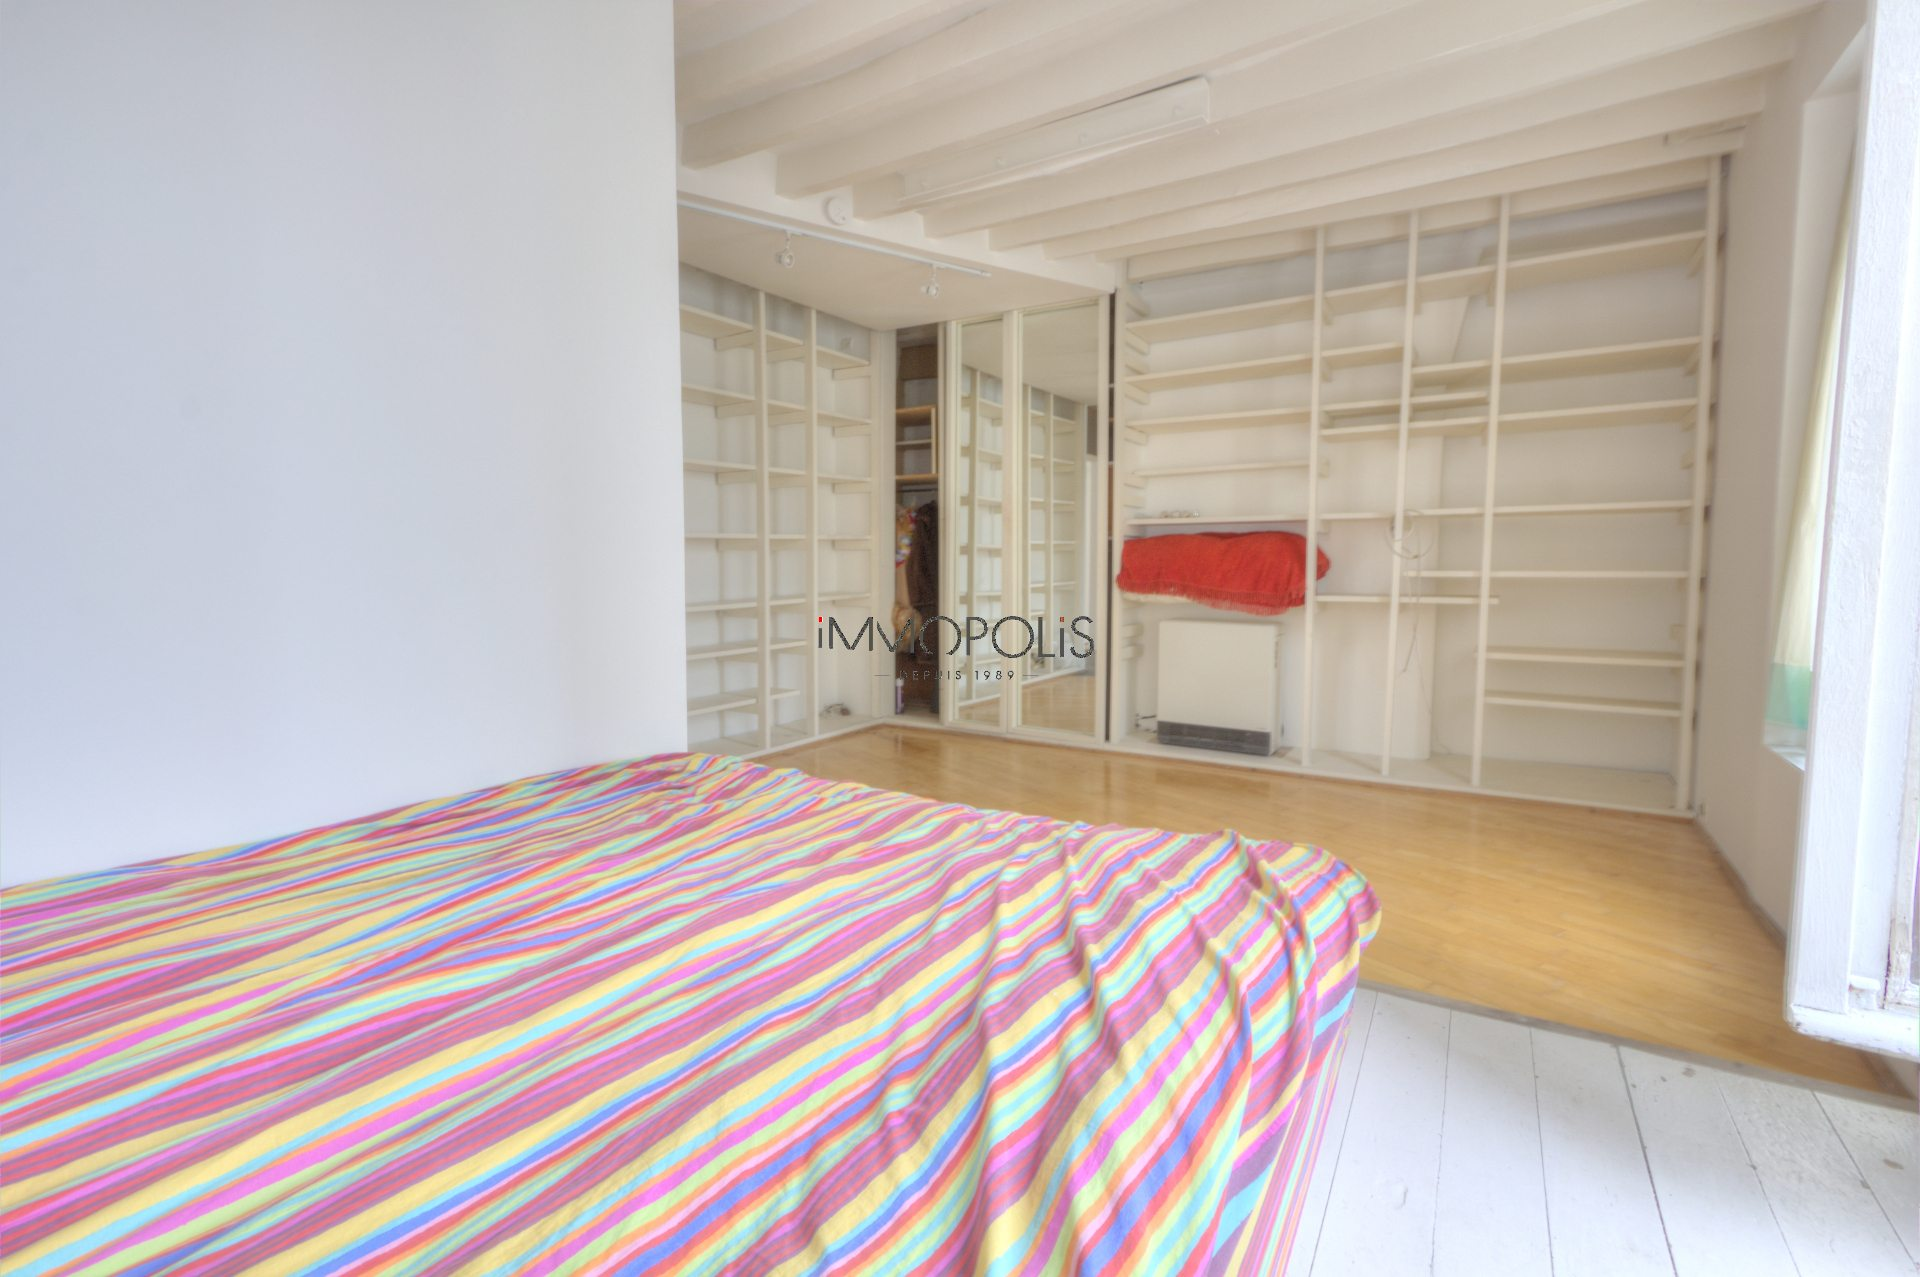 In the heart of the Abbesses, rue Berthe, beautiful 2 room apartment with a perfect plan, in good condition, crossing onto a quiet street and open courtyard! 5